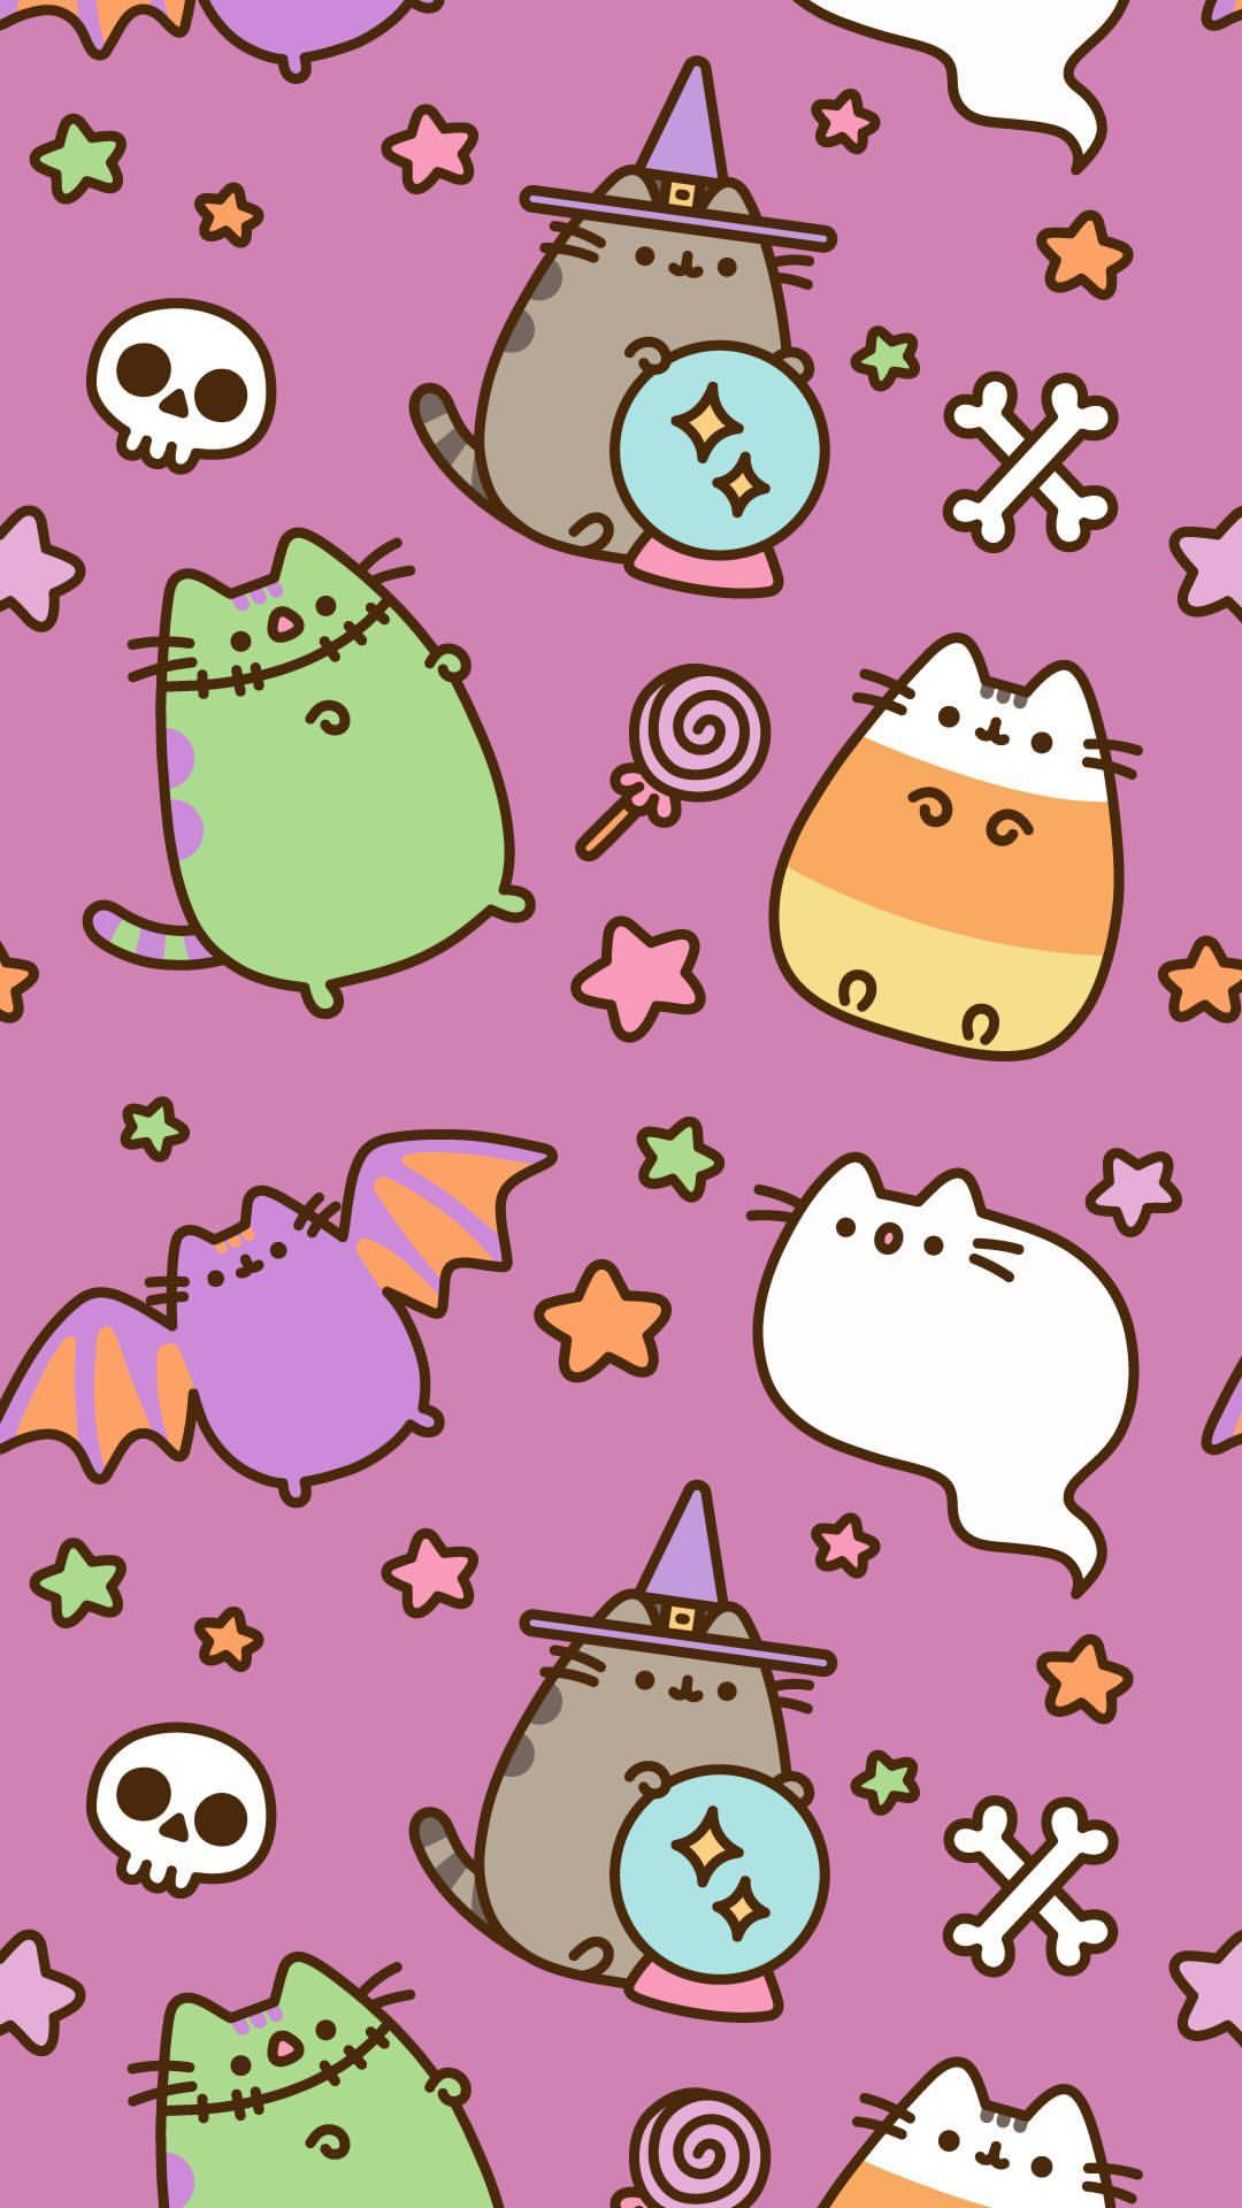 Pusheen Halloween Wallpaper Halloween Wallpaper Iphone Halloween Wallpaper Pusheen Cute